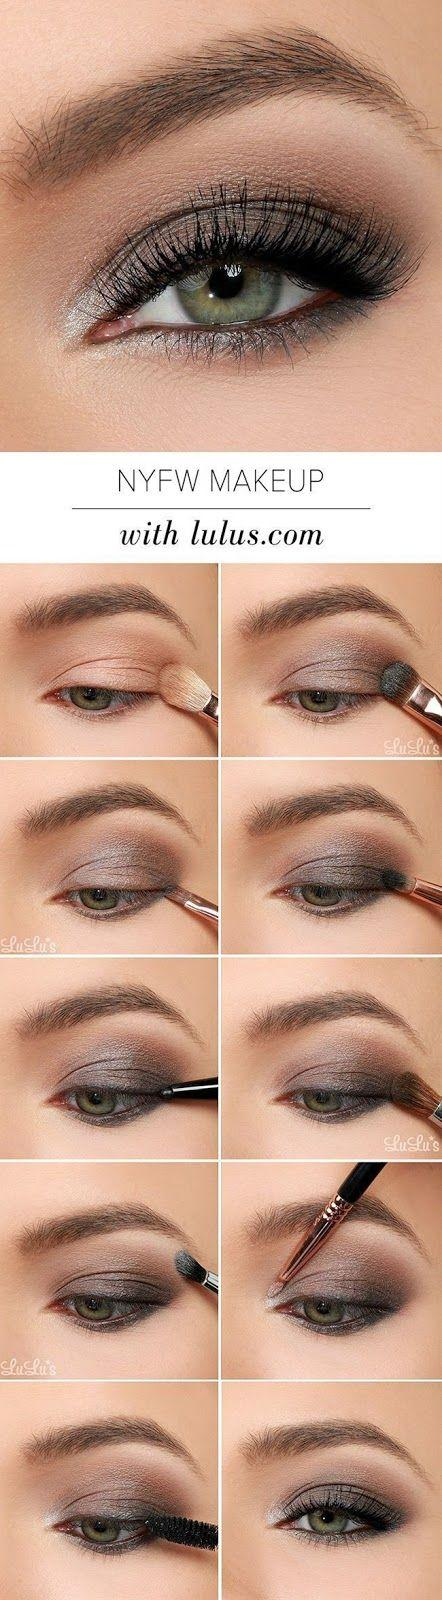 Wedding - Gray Smoked Out Eyeshadow